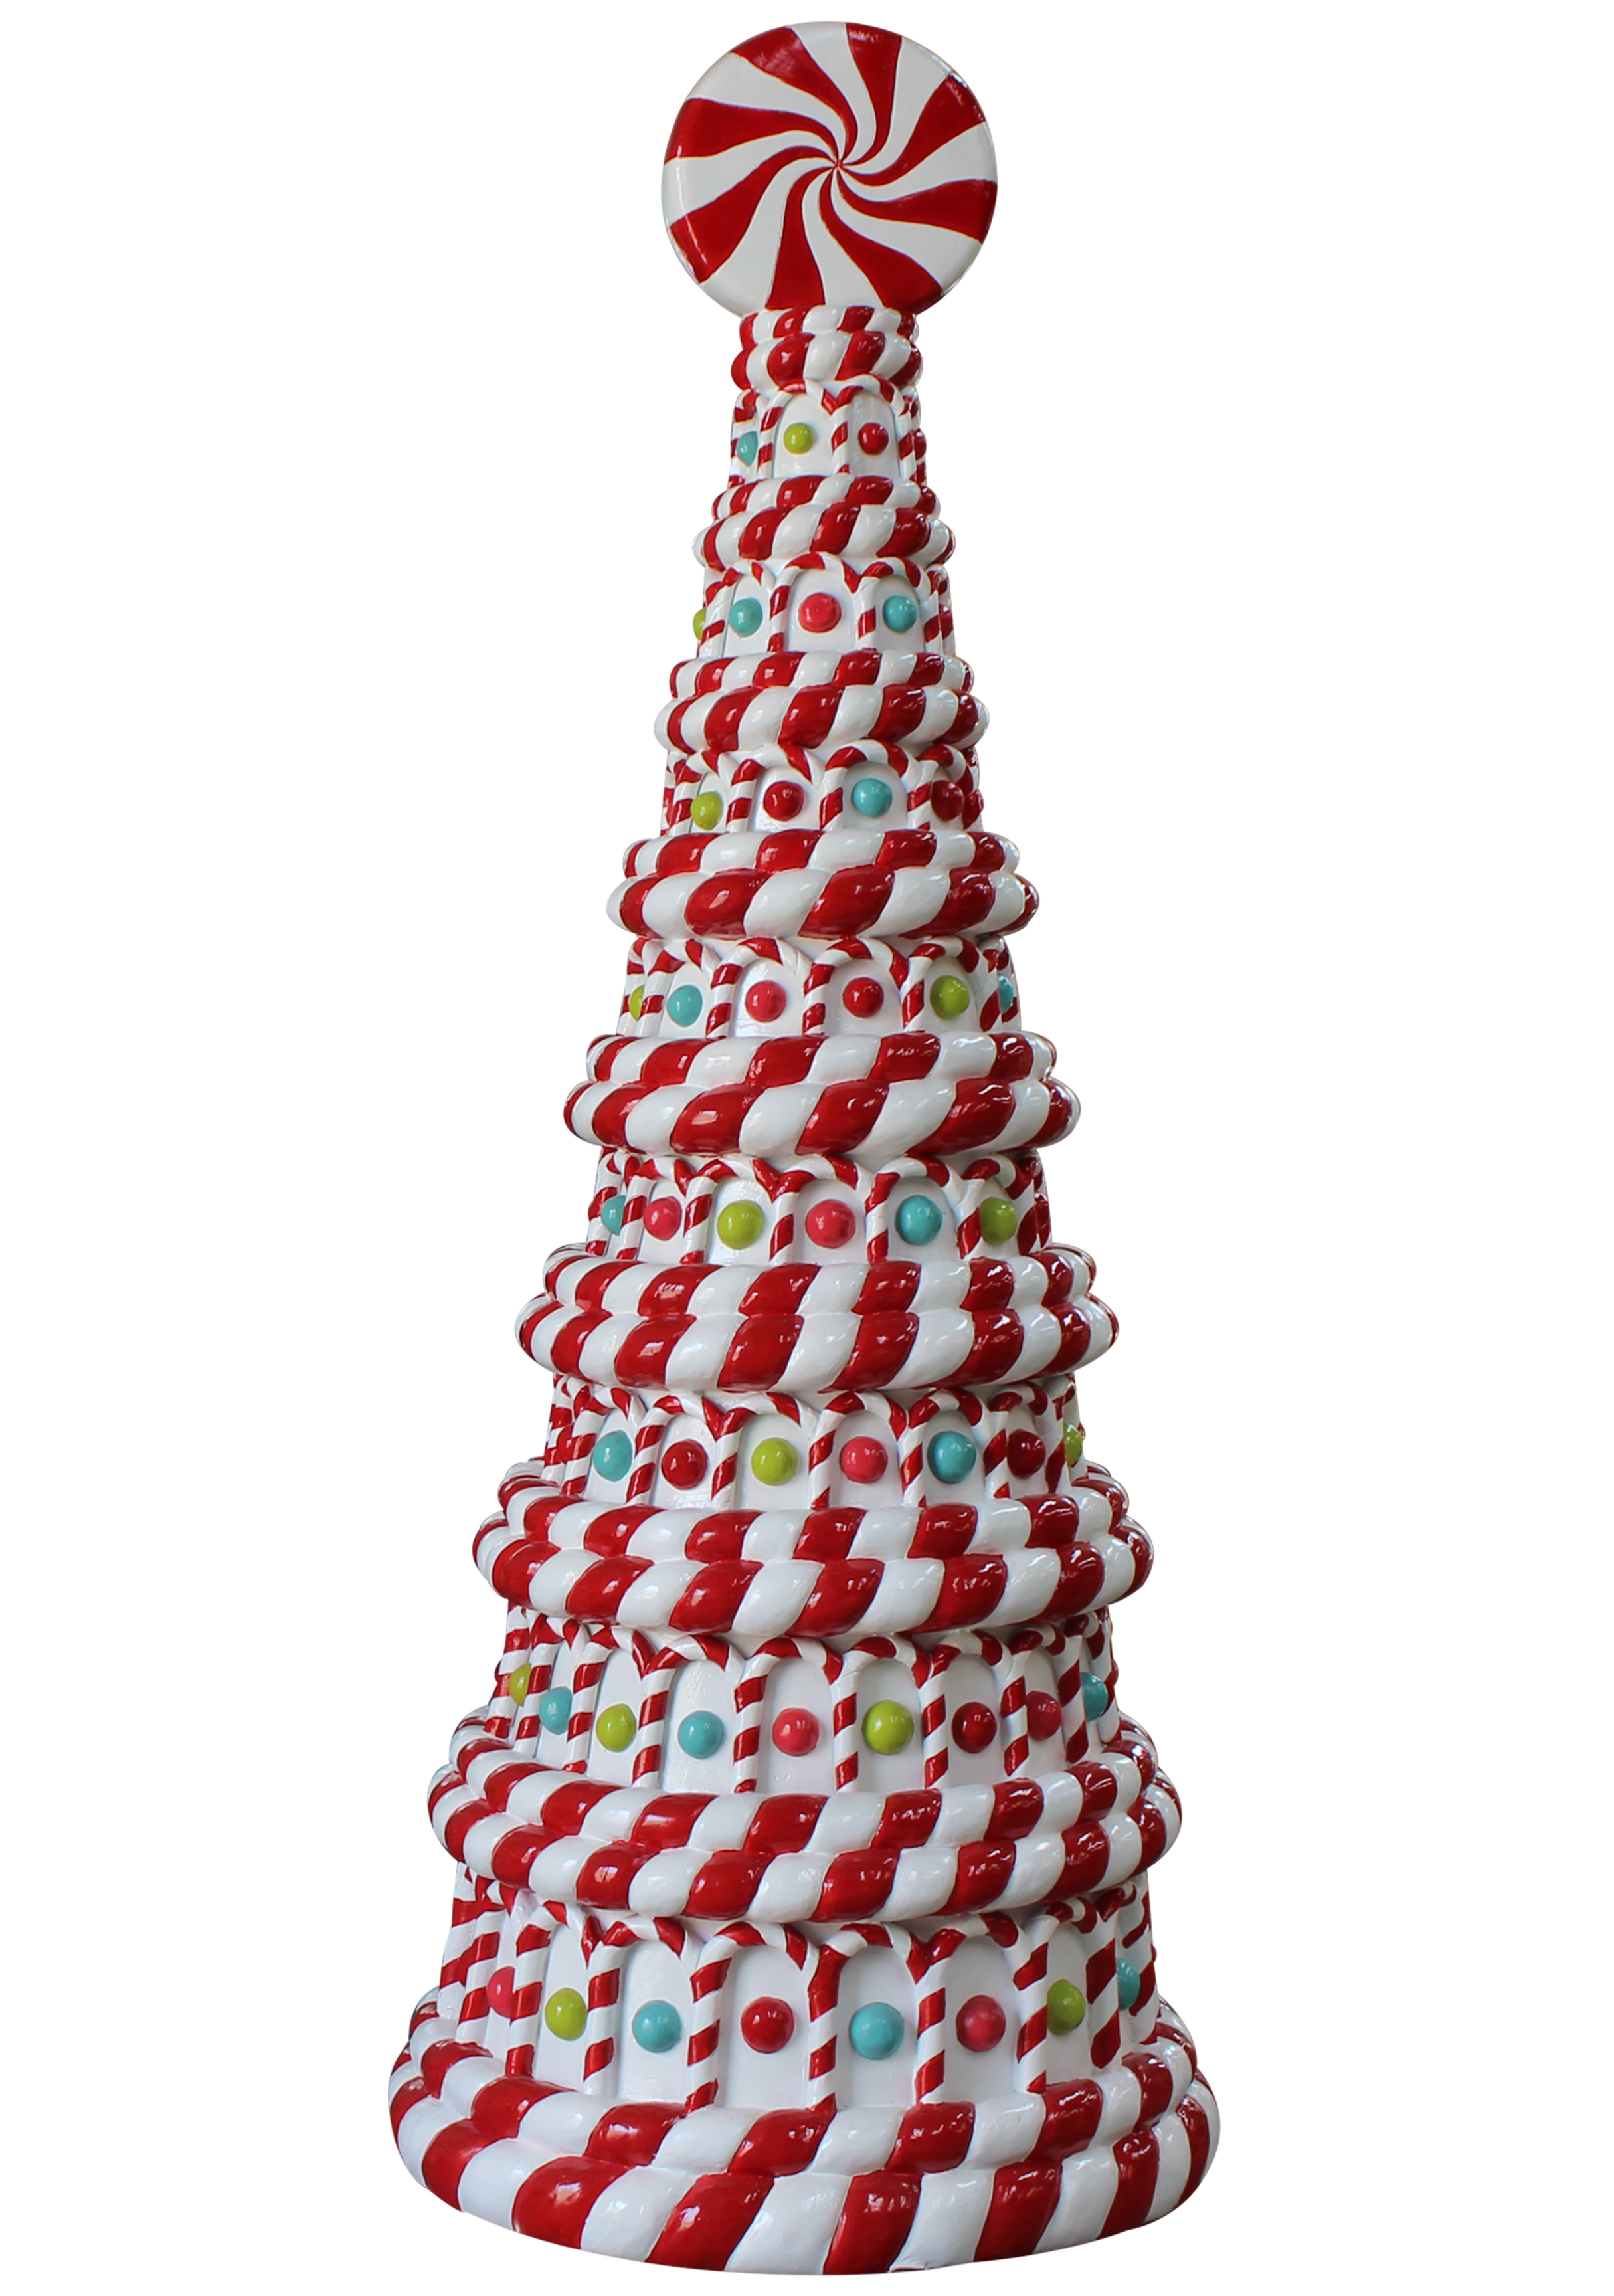 Peppermint Candy Tree 8'